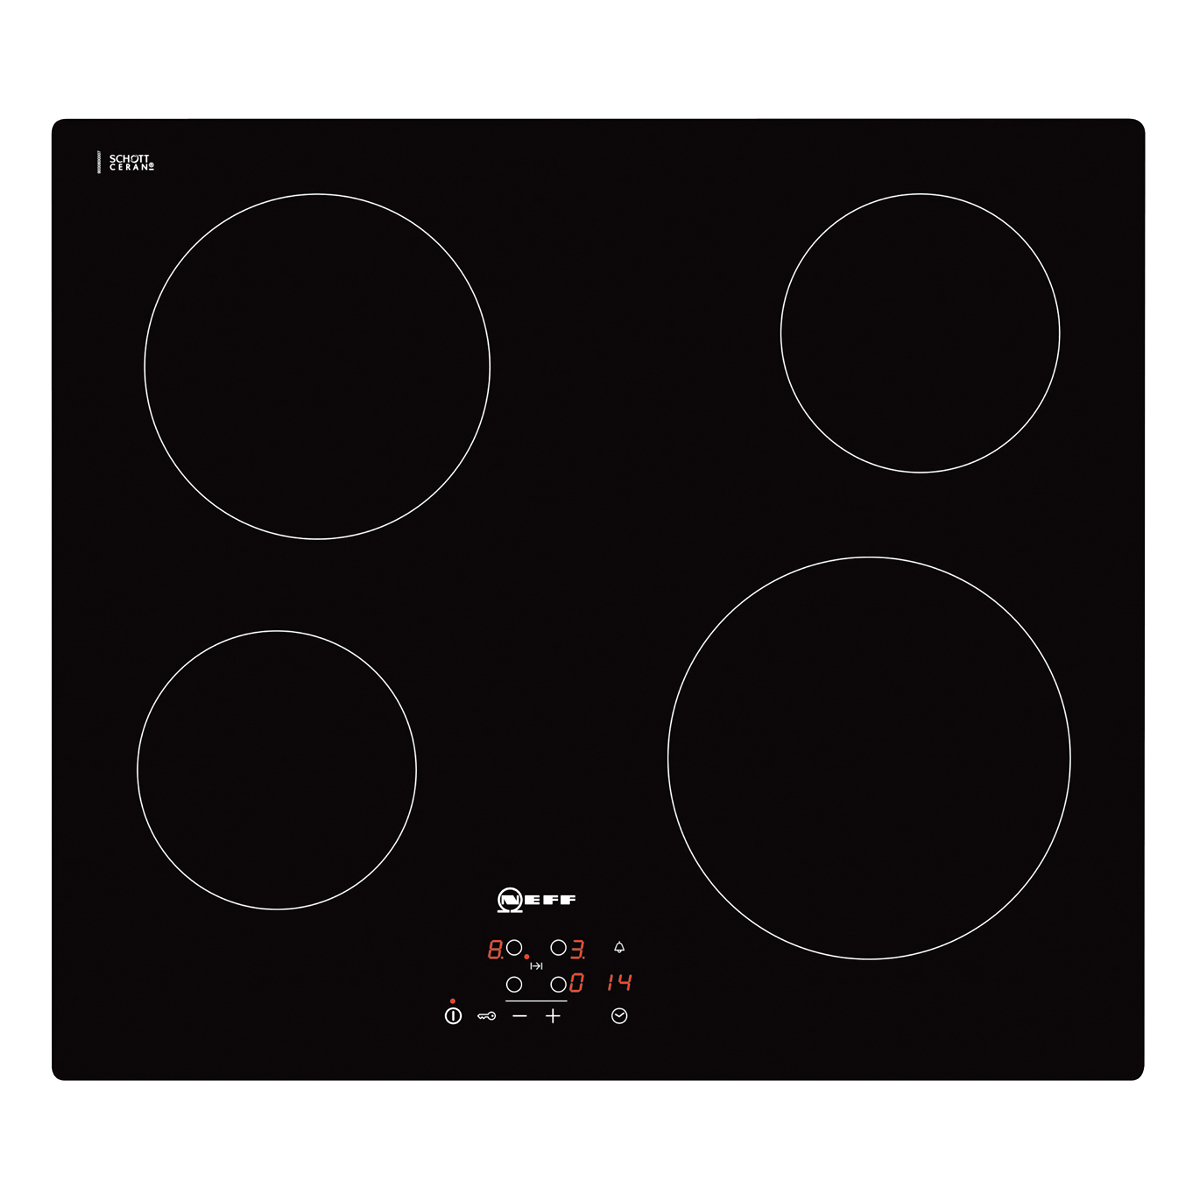 Neff T10b40x2 592mm Built In 4 Zone Ceramic Hob Hughes